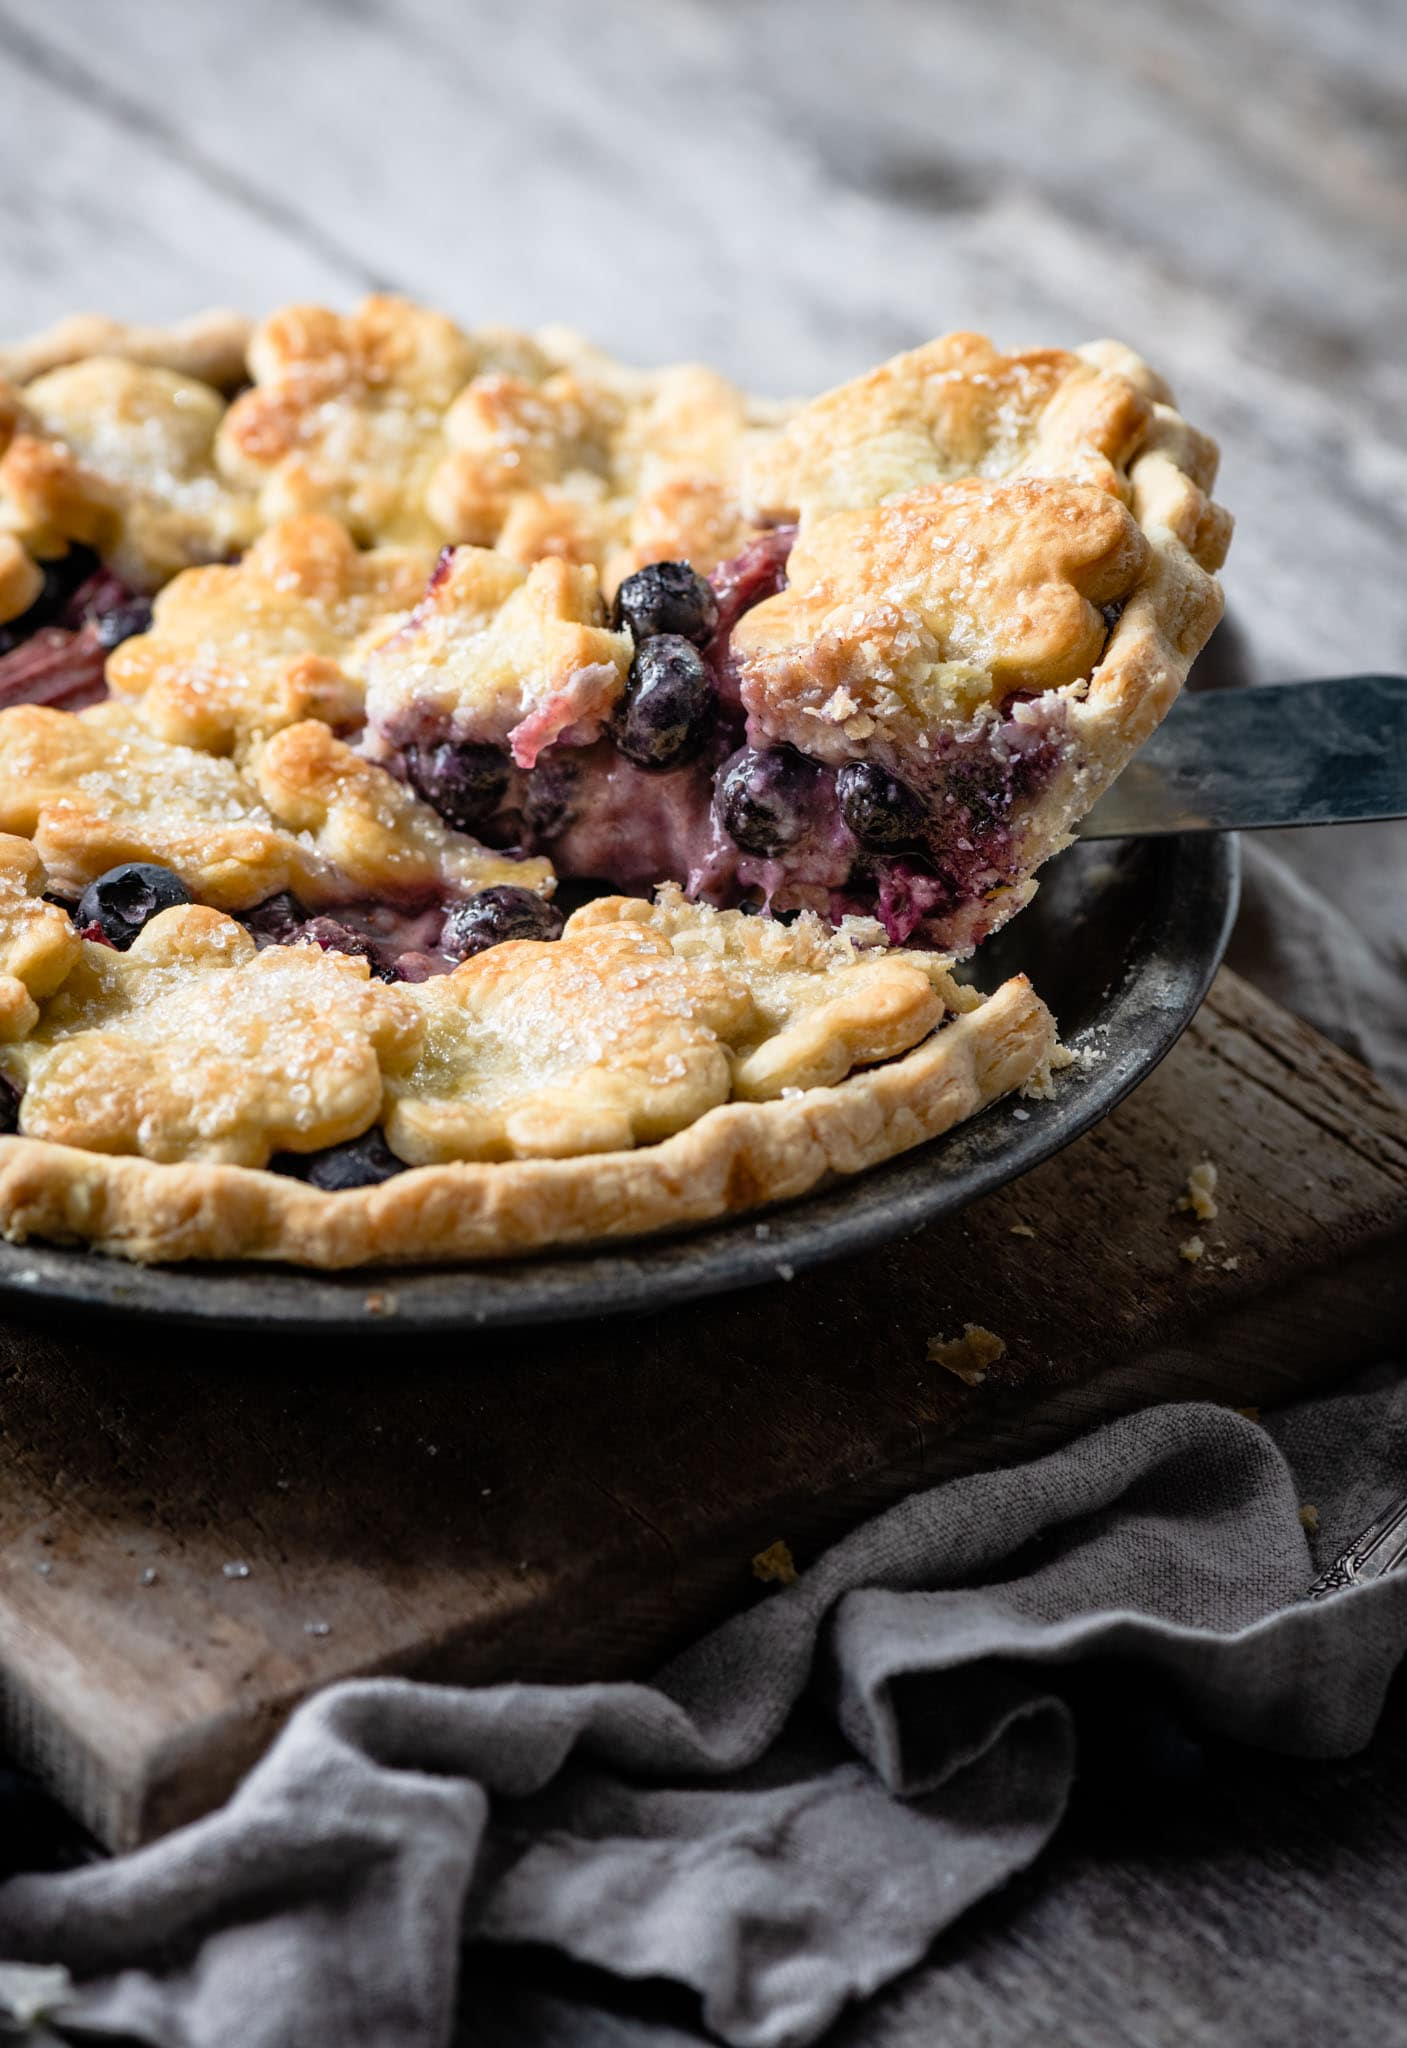 Sliced fresh blueberry pie.